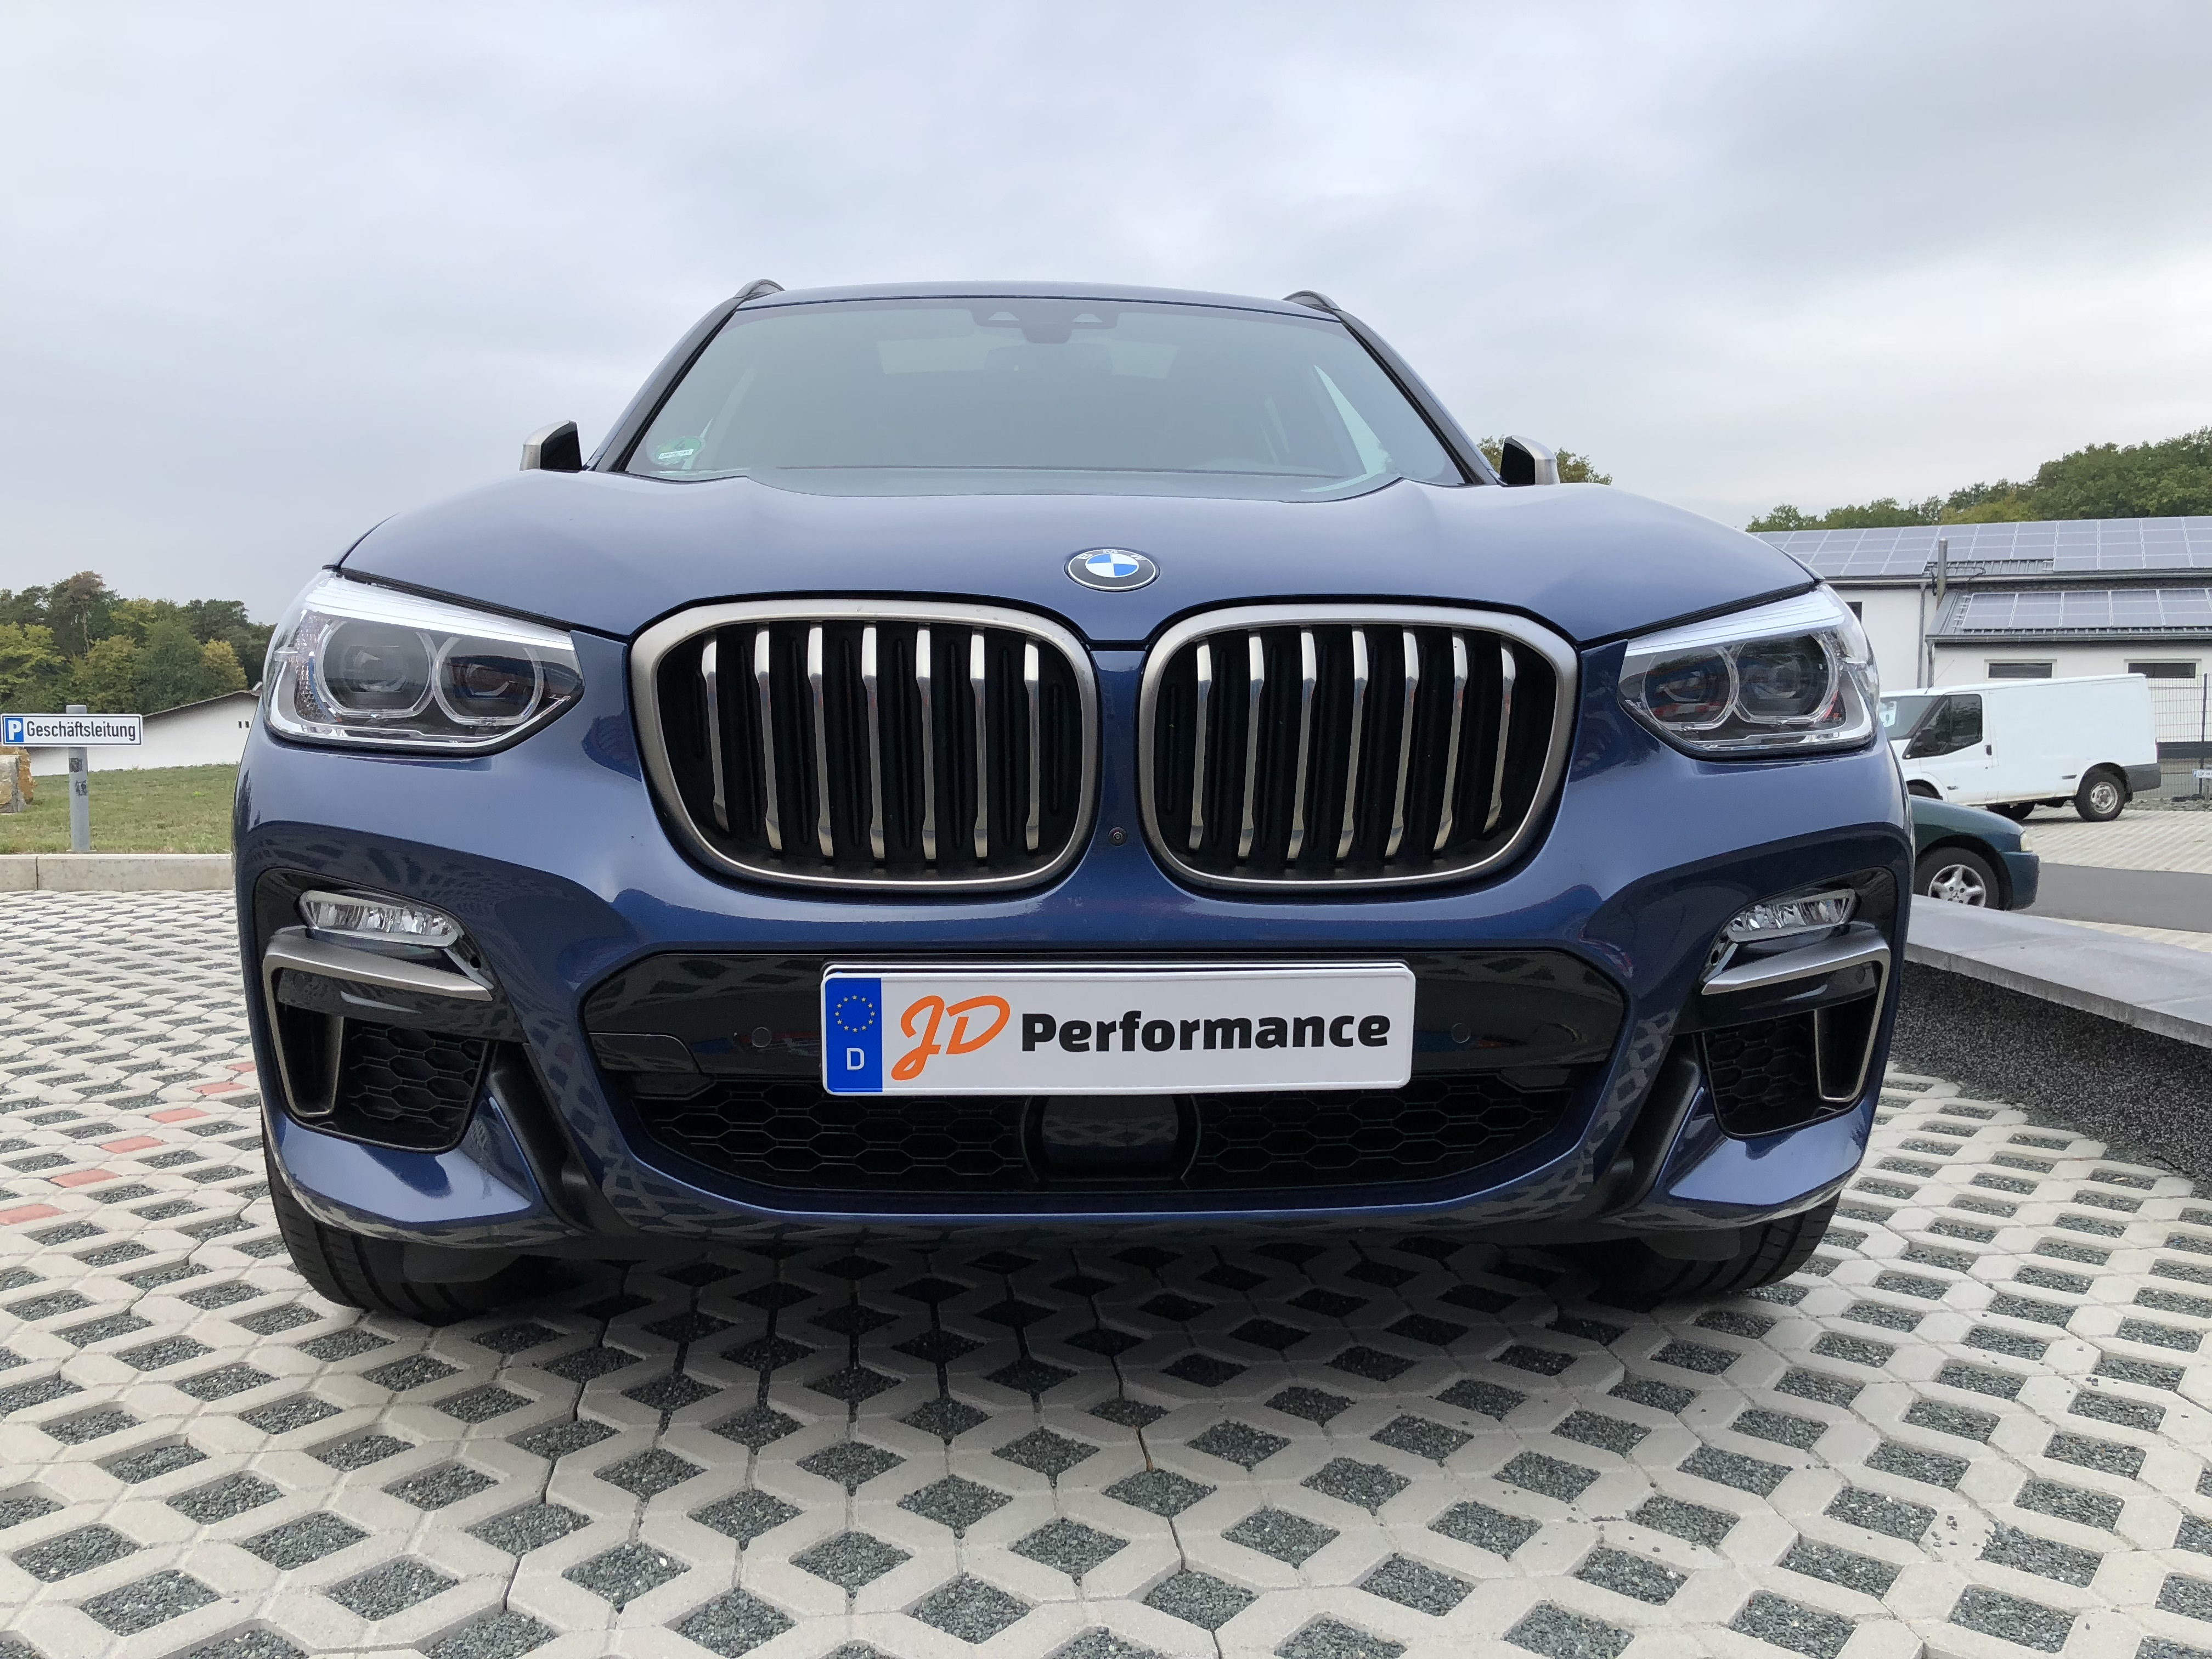 bmw x3 g01 m40i jd performance gmbh chiptuning in. Black Bedroom Furniture Sets. Home Design Ideas